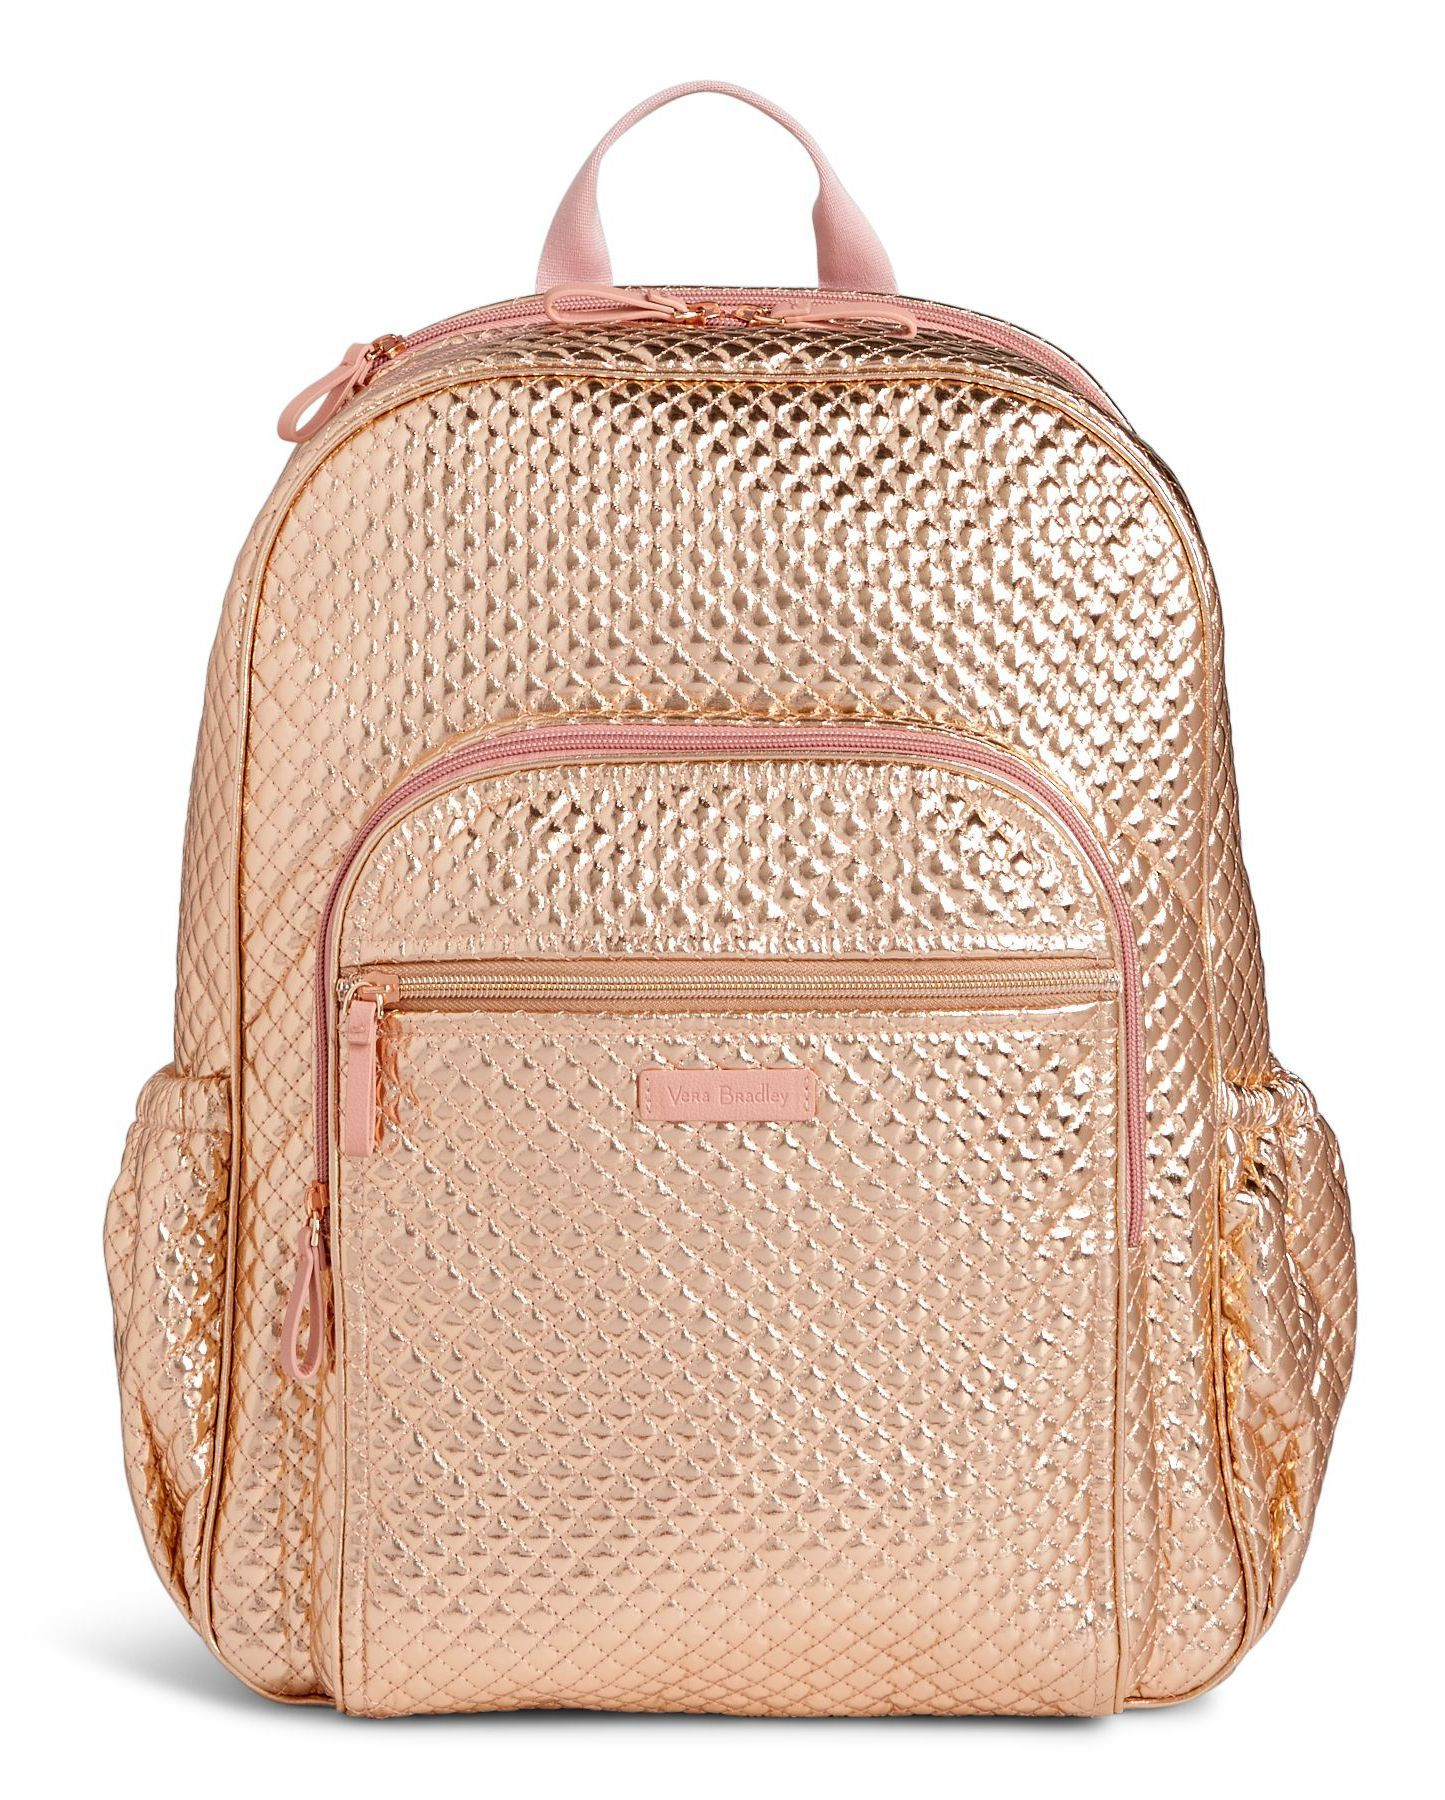 d56d1749d3b 29 Cute Backpacks That Will Totally *Make* Your Outfit at School ...